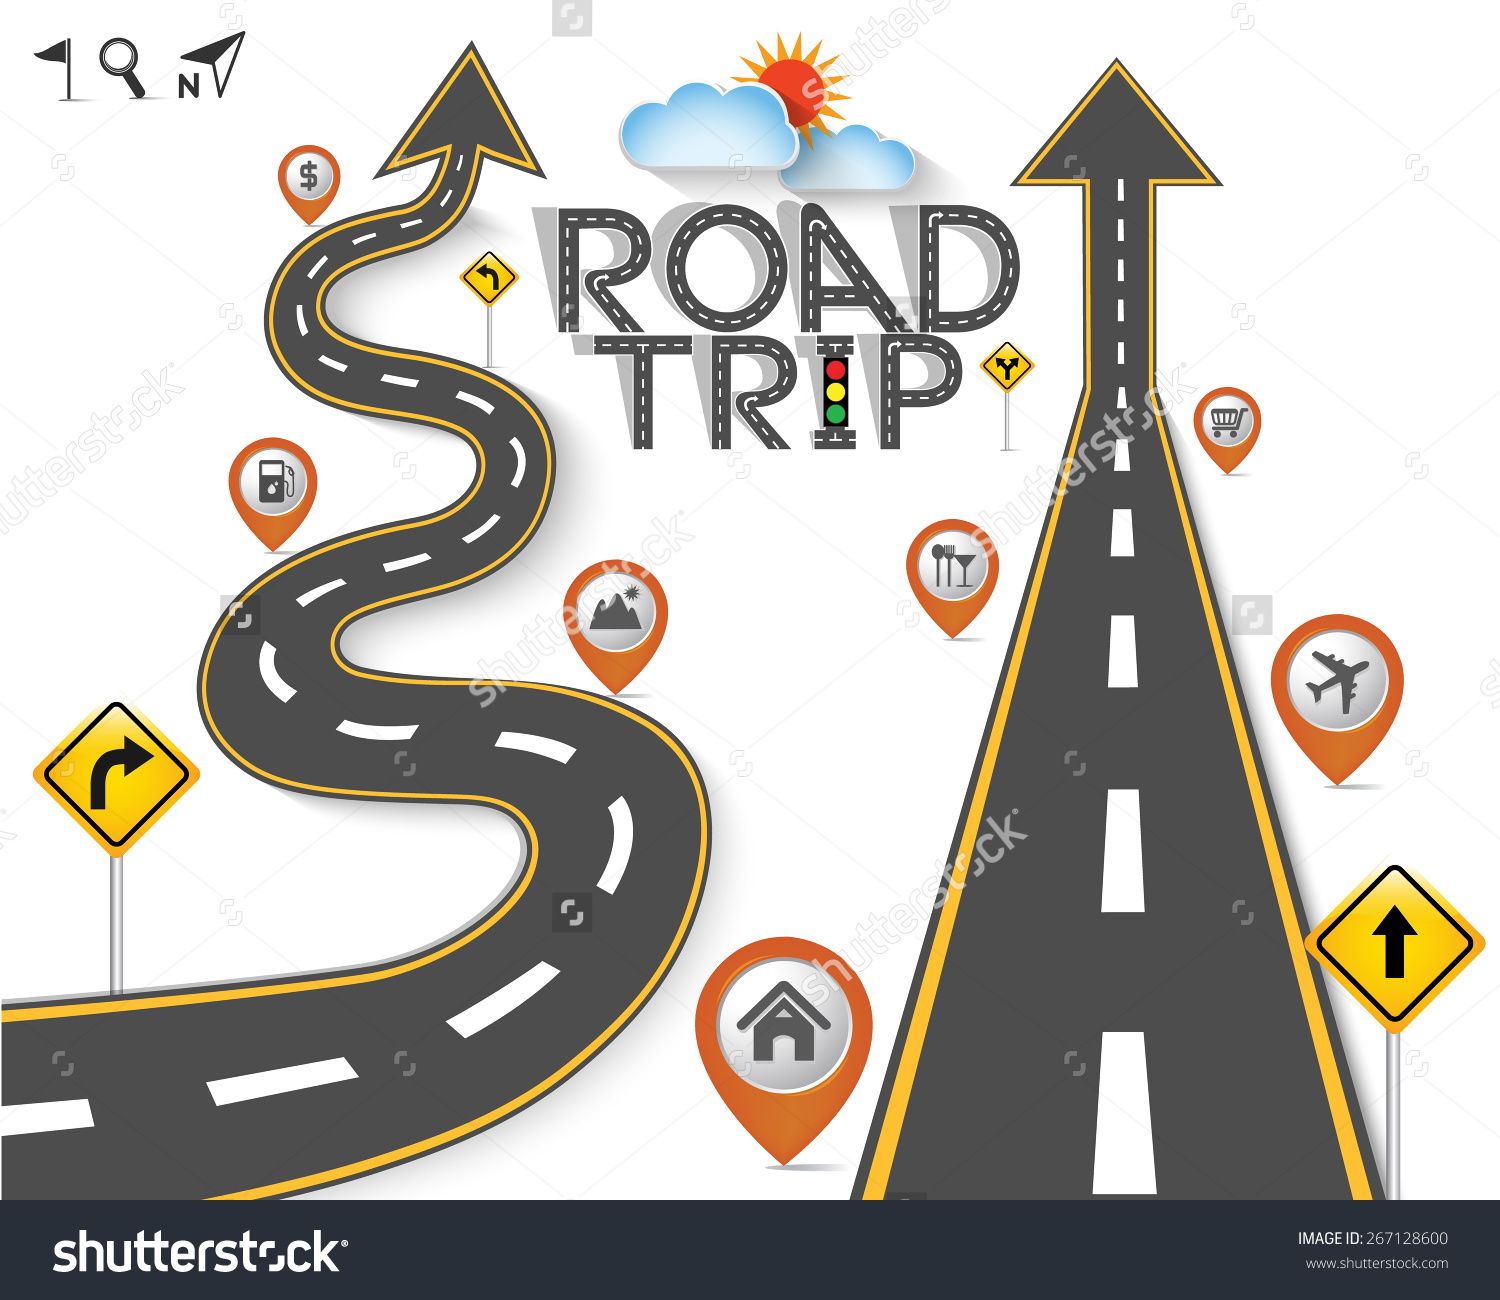 Map and road clipart picture transparent Road trip map clipart - ClipartFox picture transparent